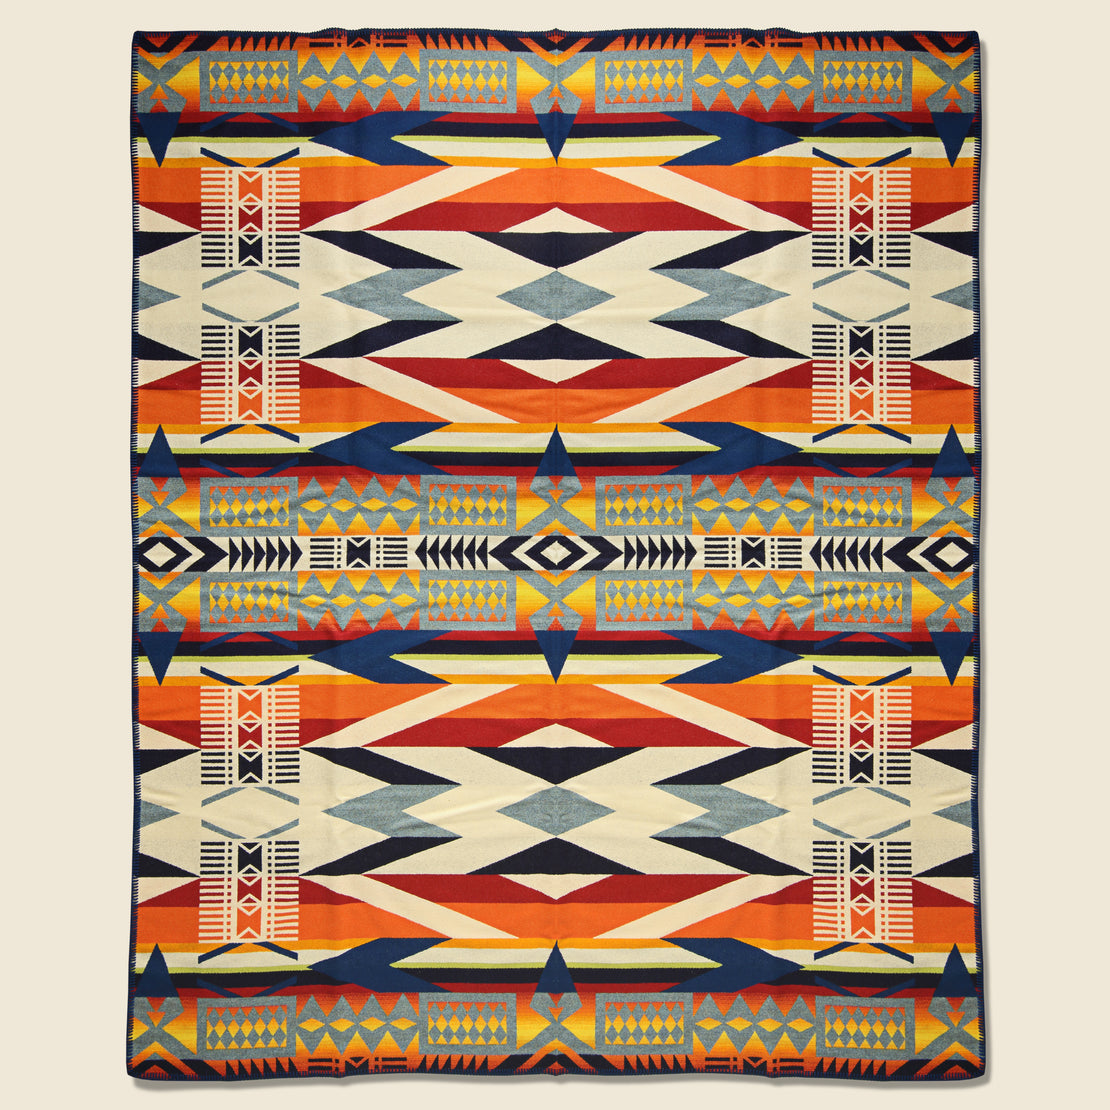 Pendleton Fire Legend Blanket - Sunset